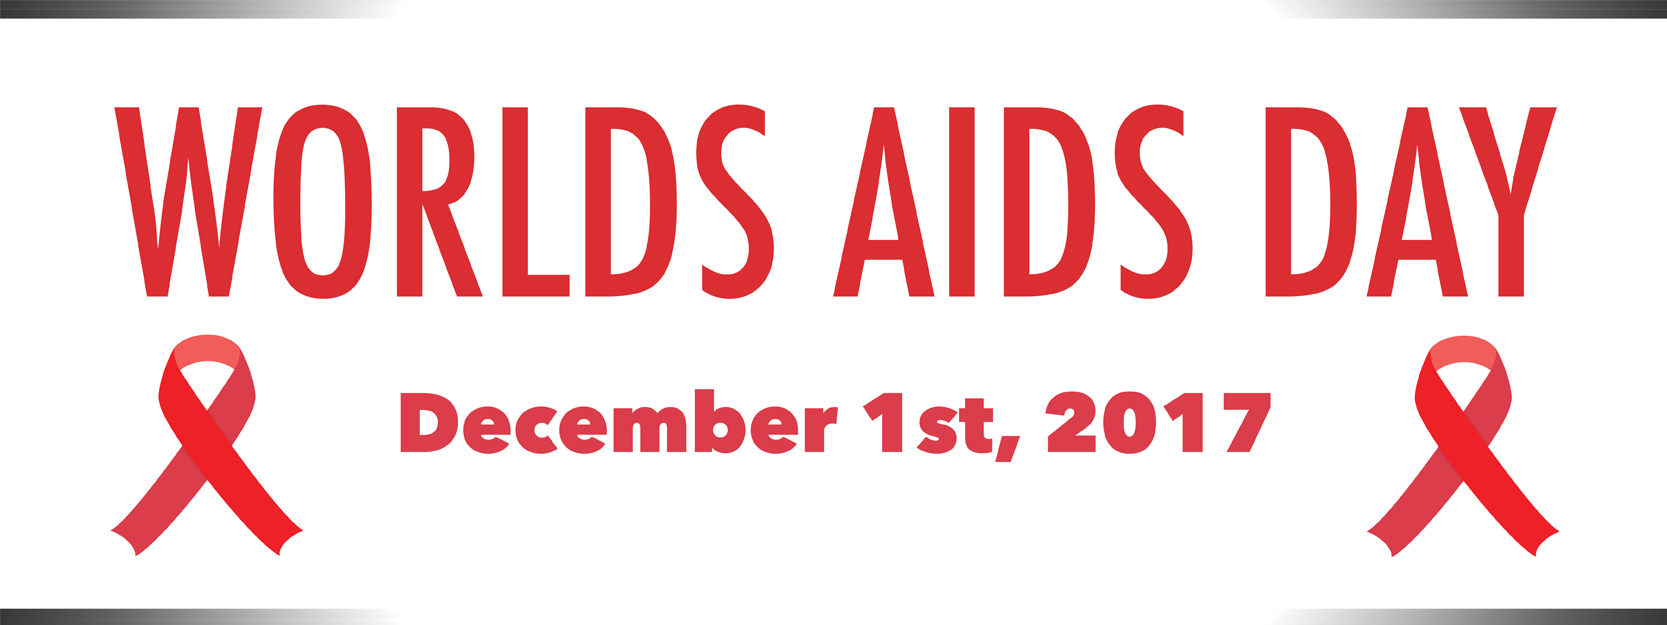 worldaidsday_banner